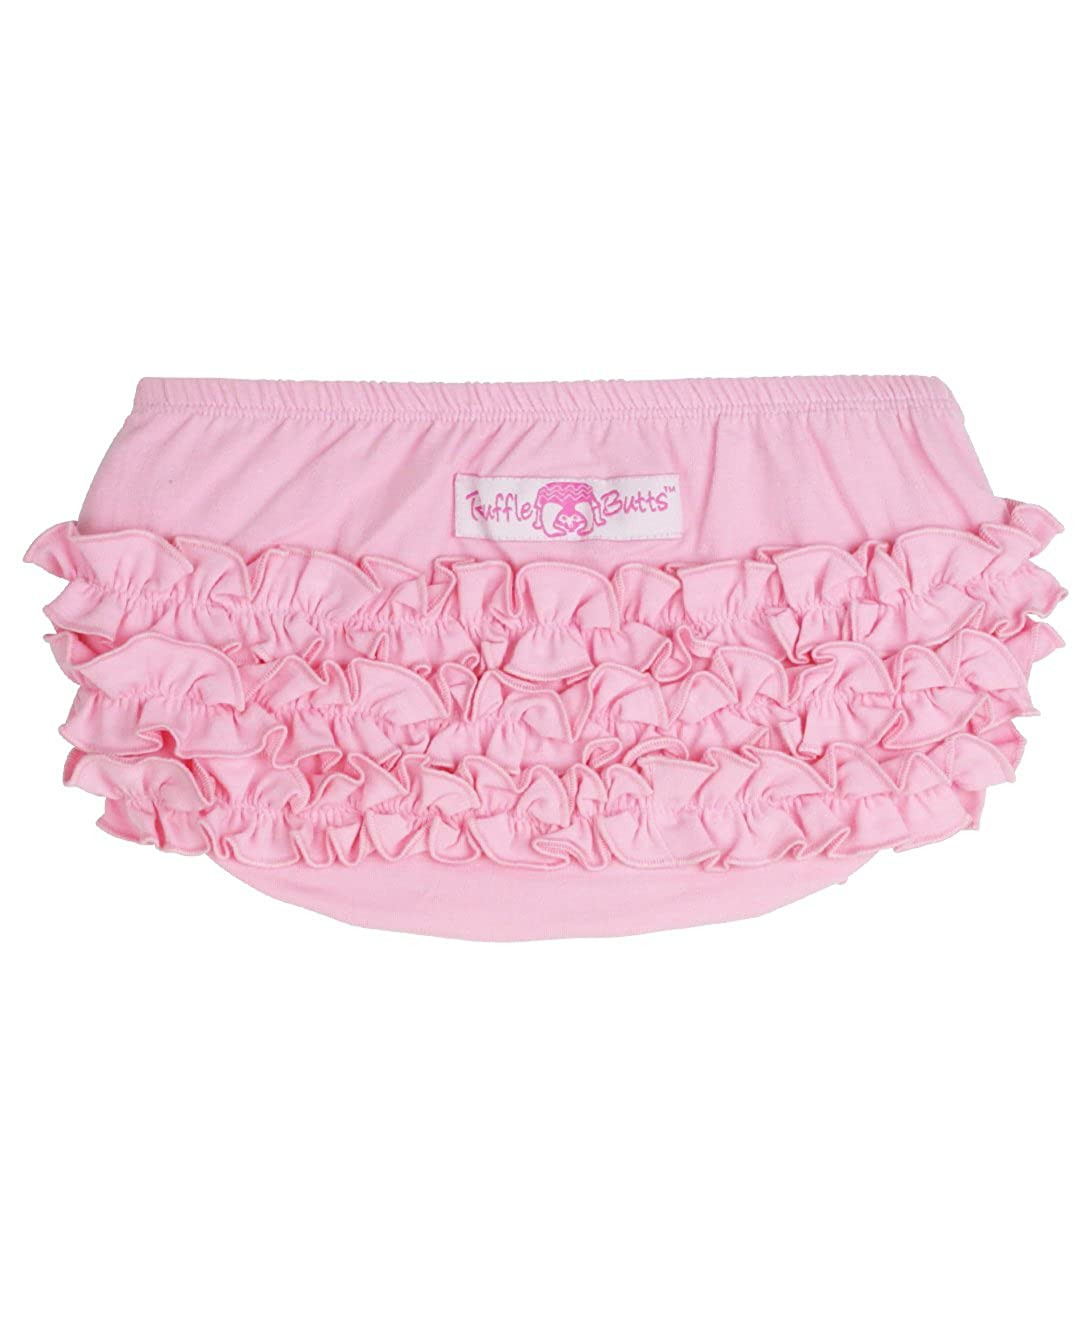 RuffleButts Little Girls Knit Ruffled Bloomer RBKBL2T-0000